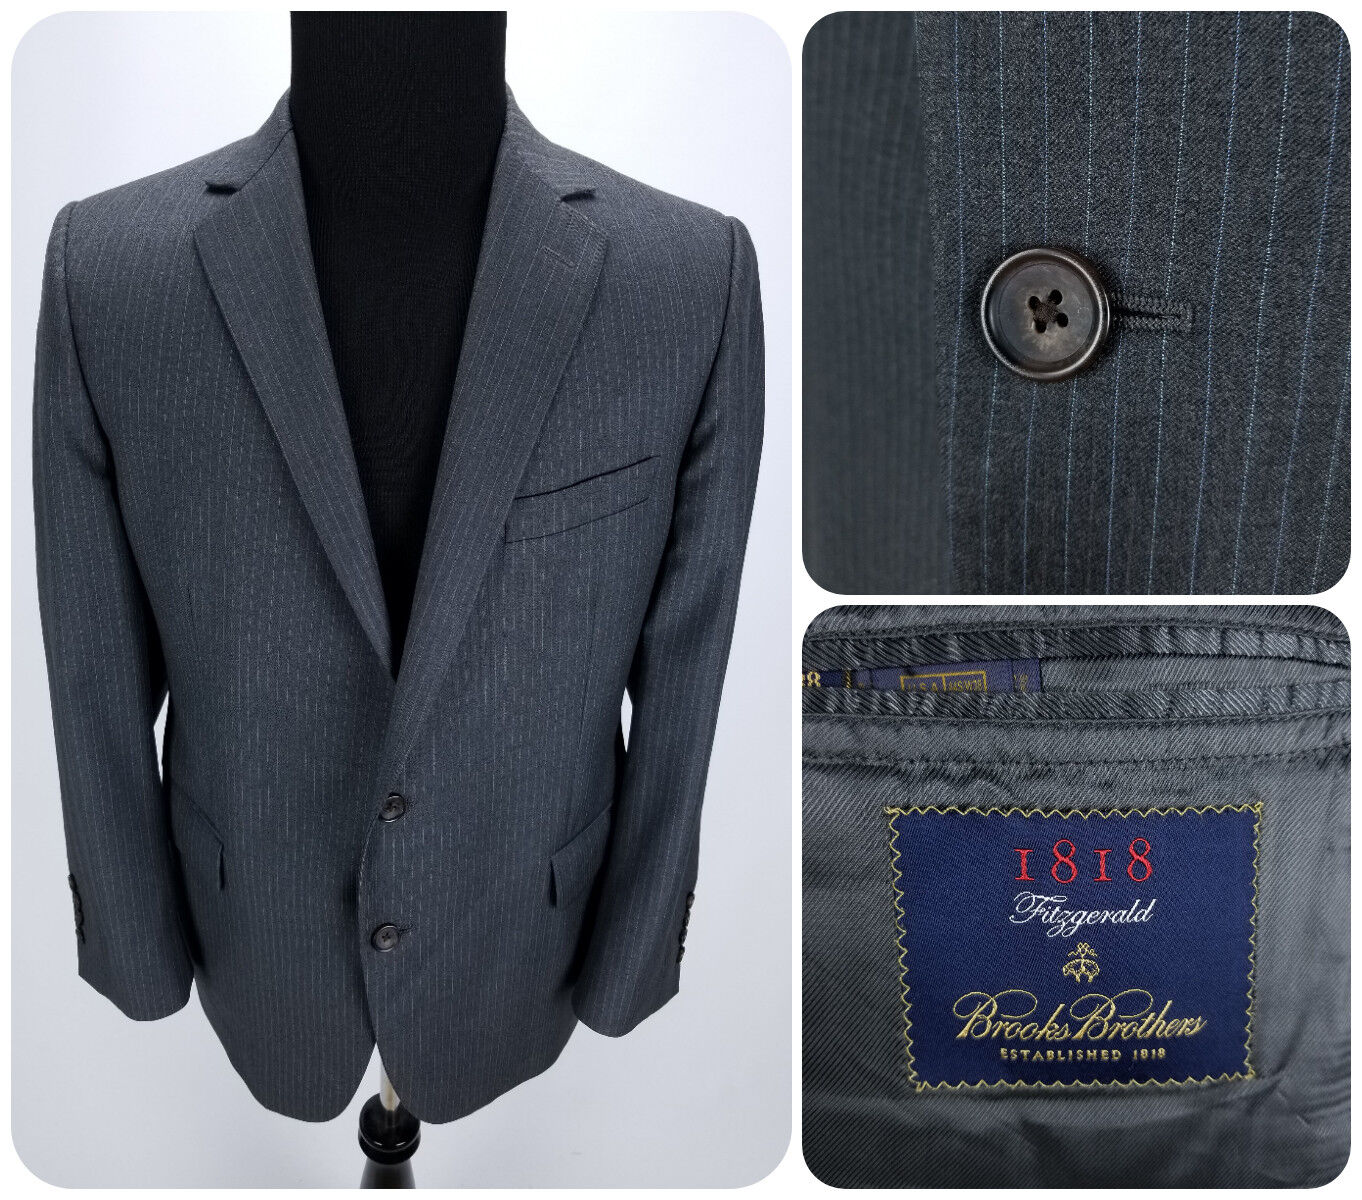 Brooks Brothers 1818 Fitzgerald 44S W38 Italien Charcoal Wool Stripped Stripped Stripped Suit Jacket 90b